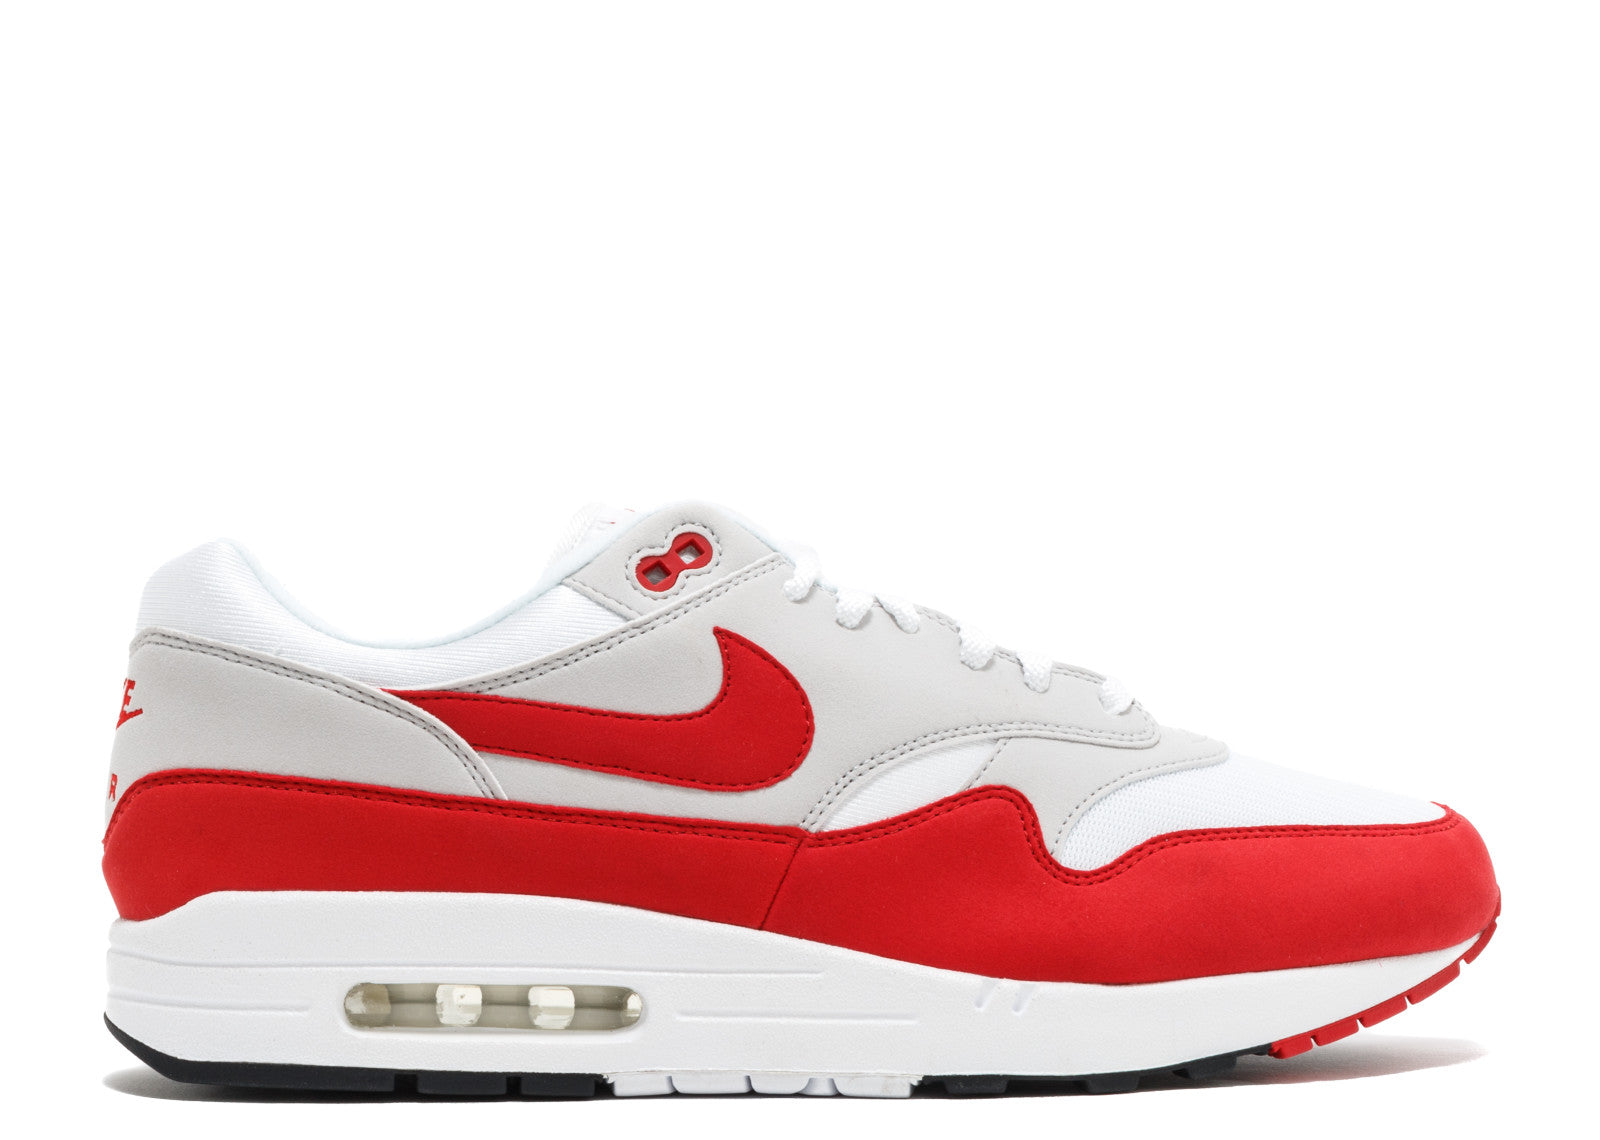 Where to buy Air Max 1 shoe laces?